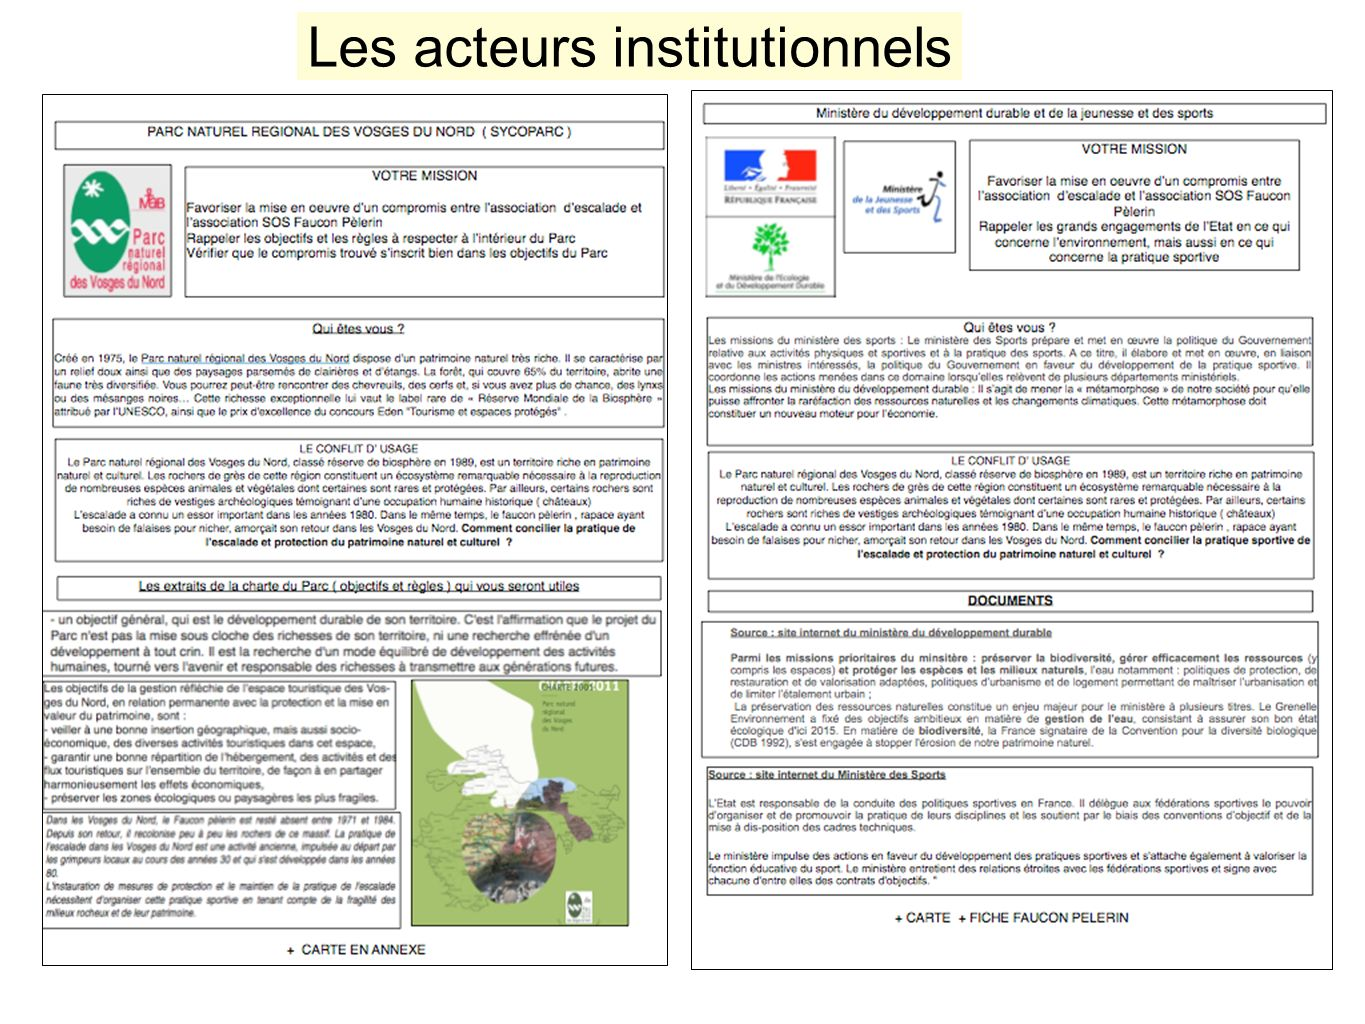 Les acteurs institutionnels